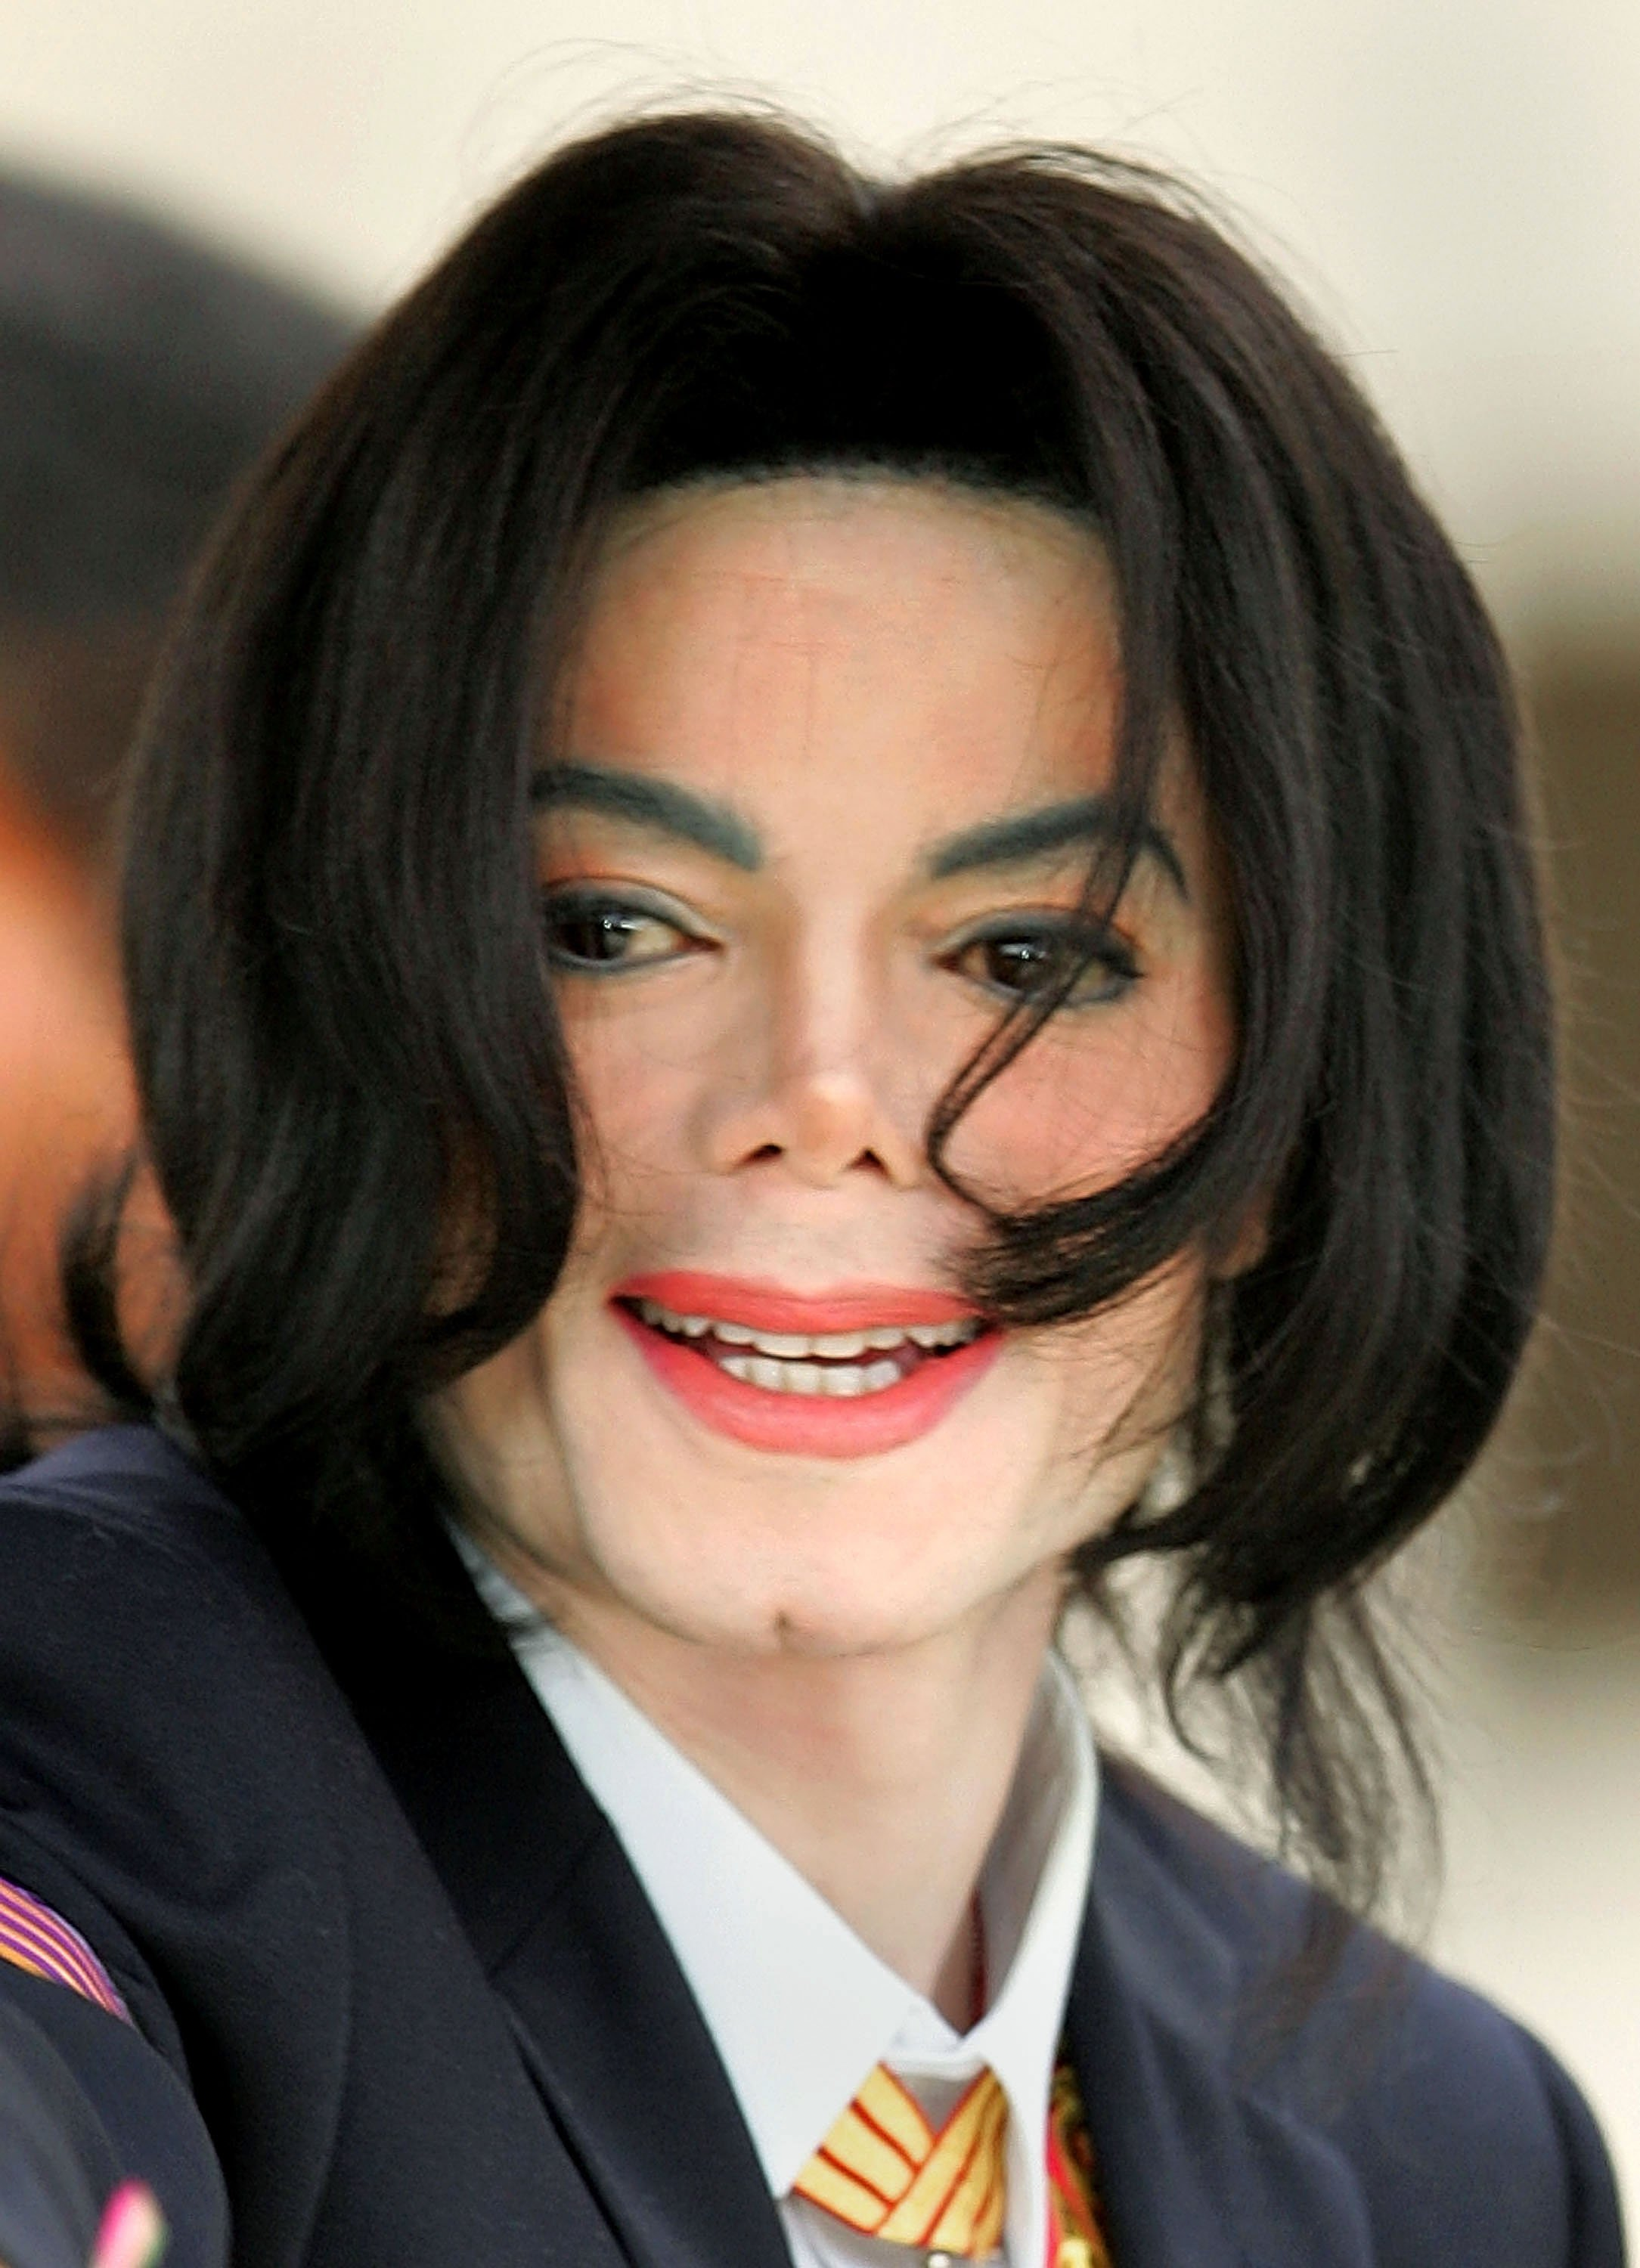 The Late Michael Jackson during his child molestation trial at the Santa Barbara County Courthouse in March 2005. | Photo: Getty Images.